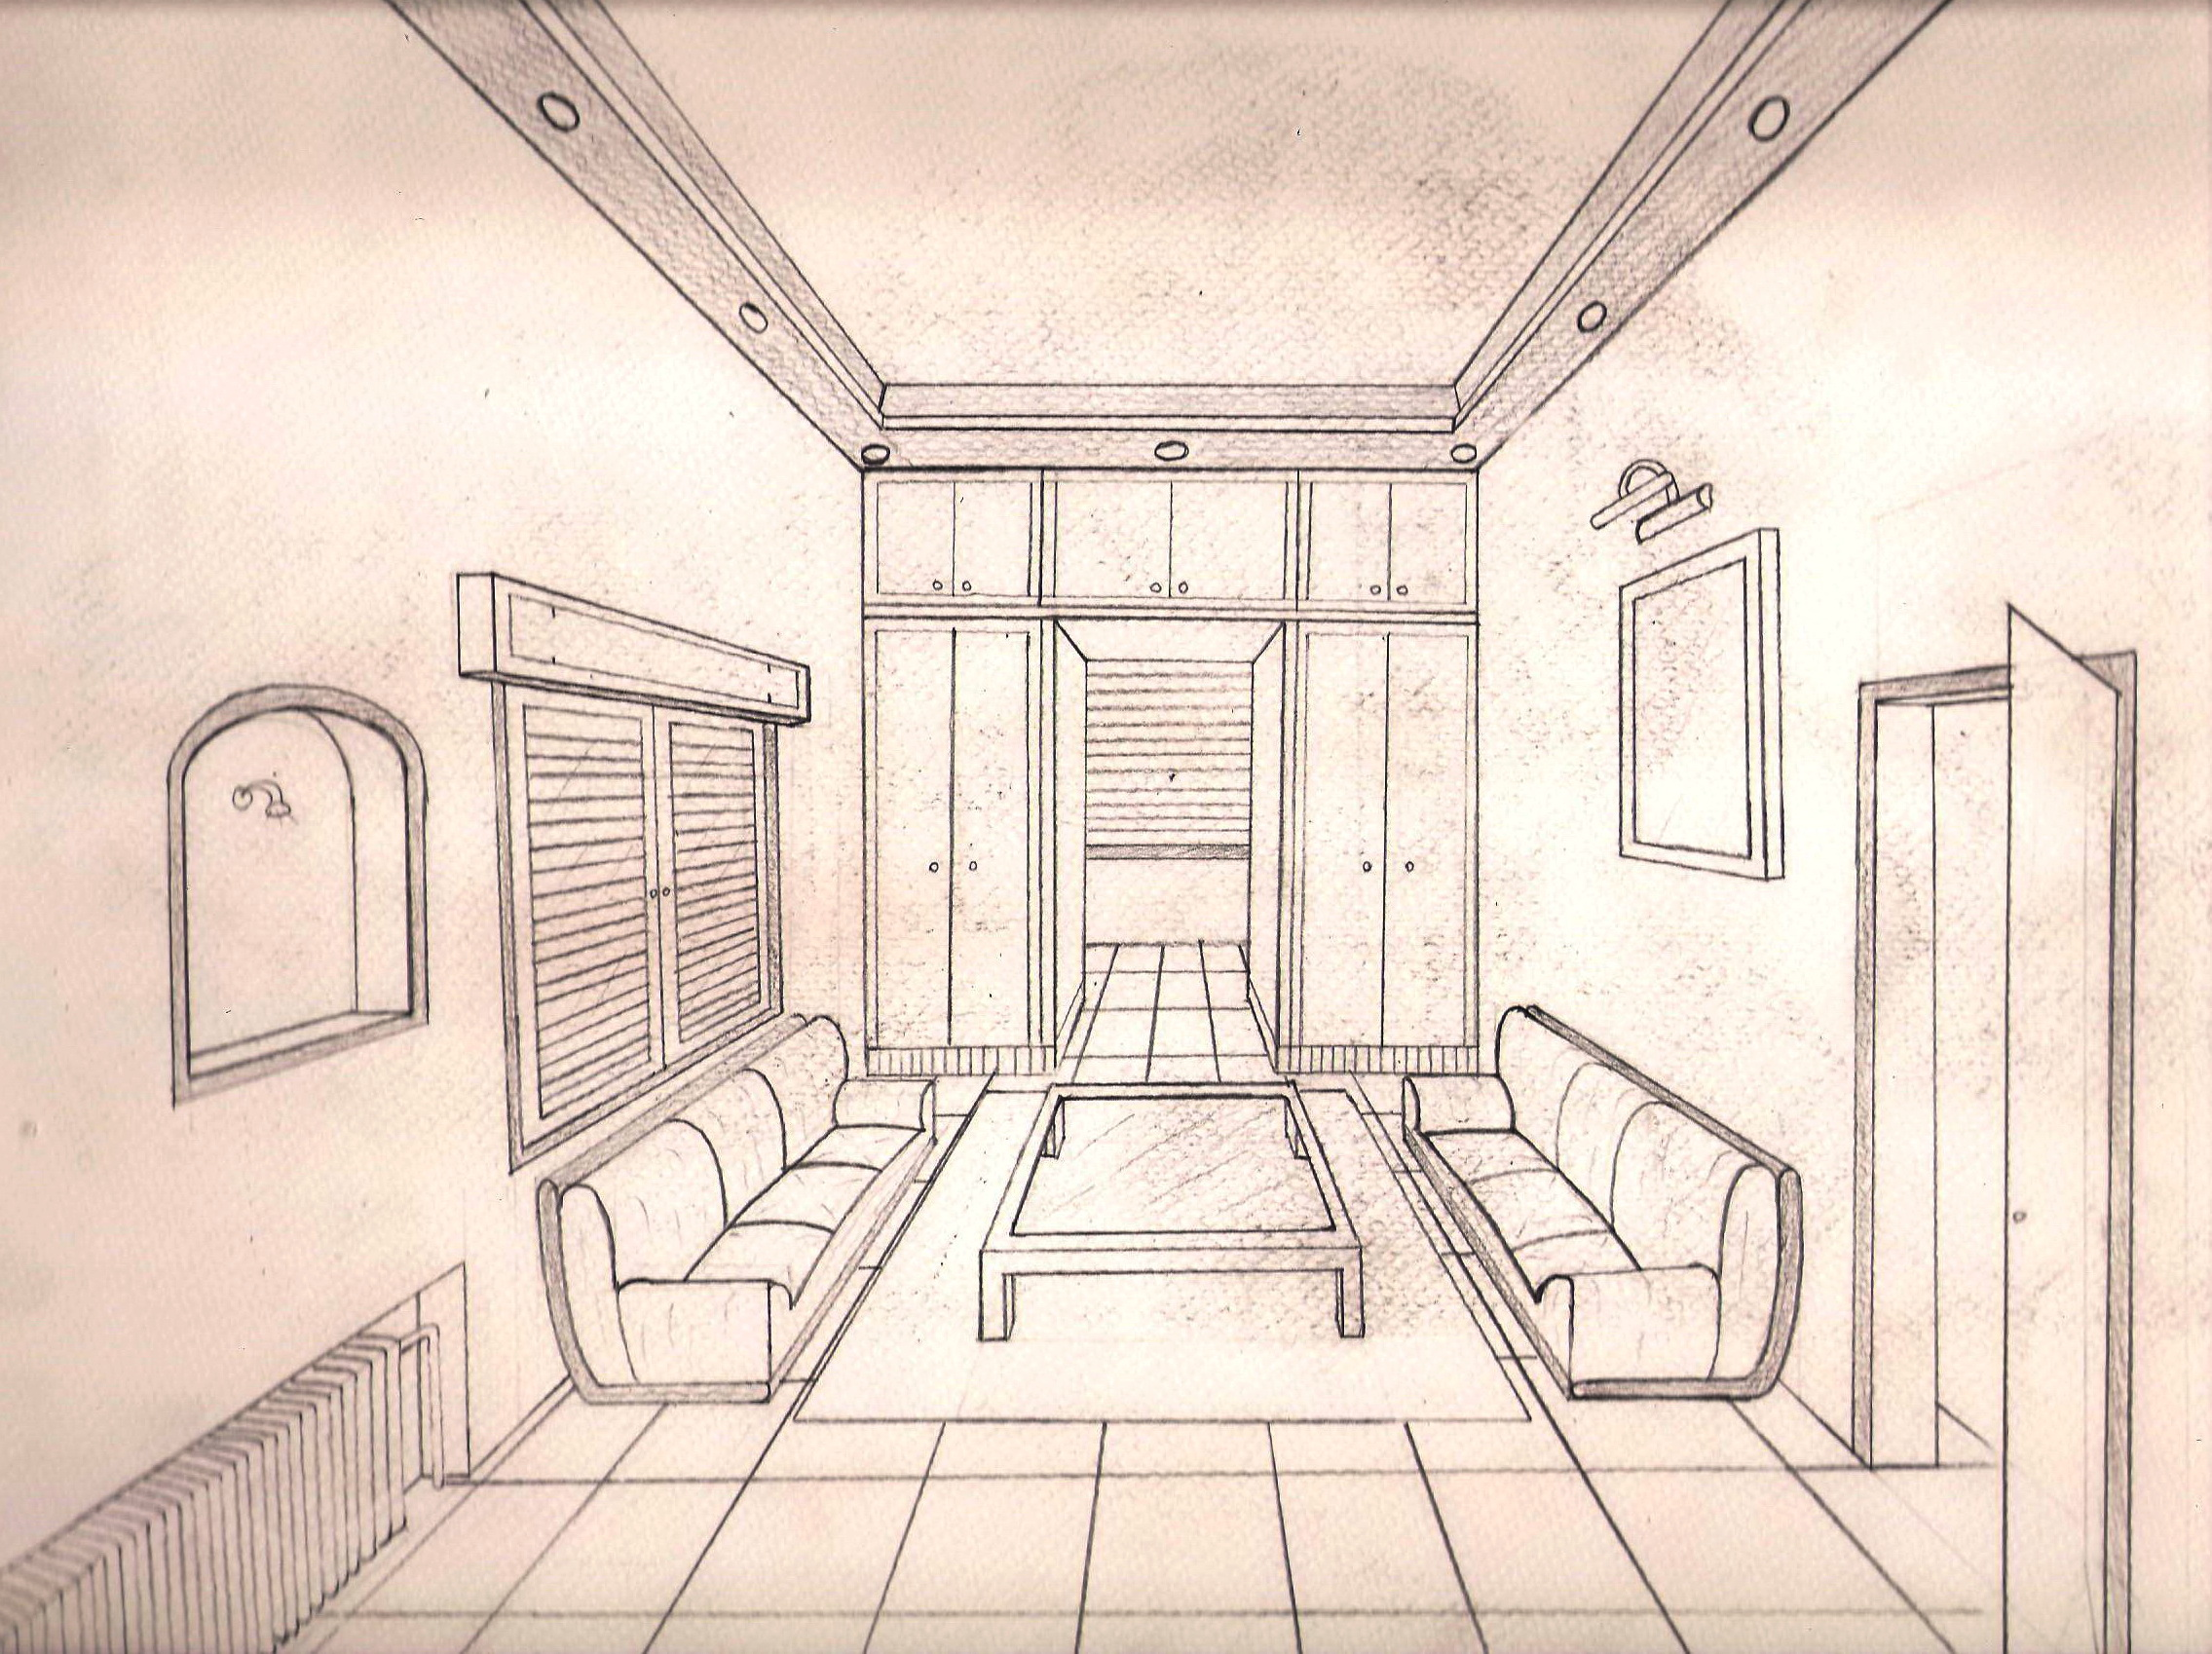 Interior Perspective Drawing At Getdrawings Free For Personal